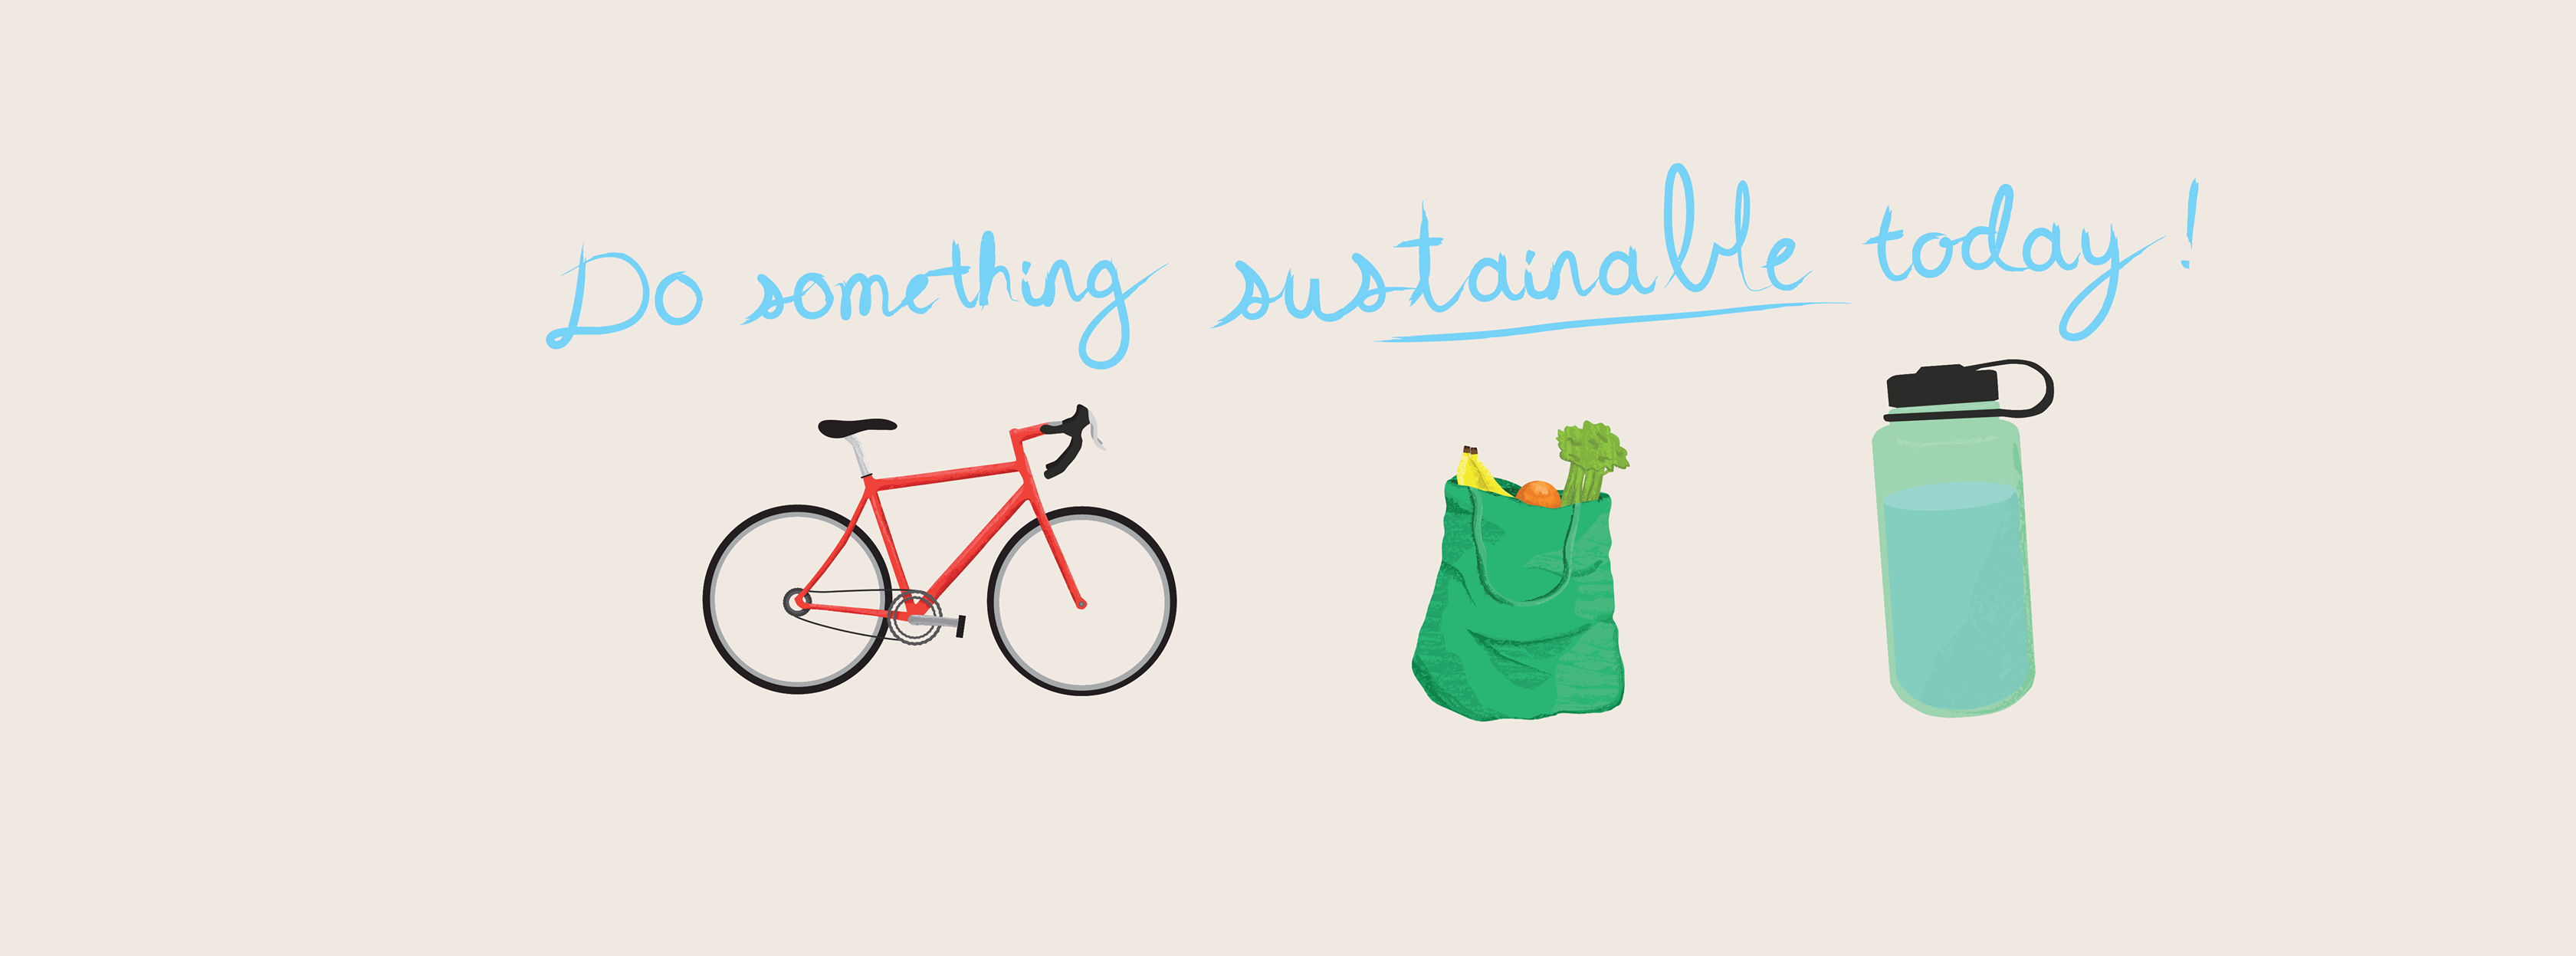 Do something sustainable today with bike reusable bag and reusable water bottle